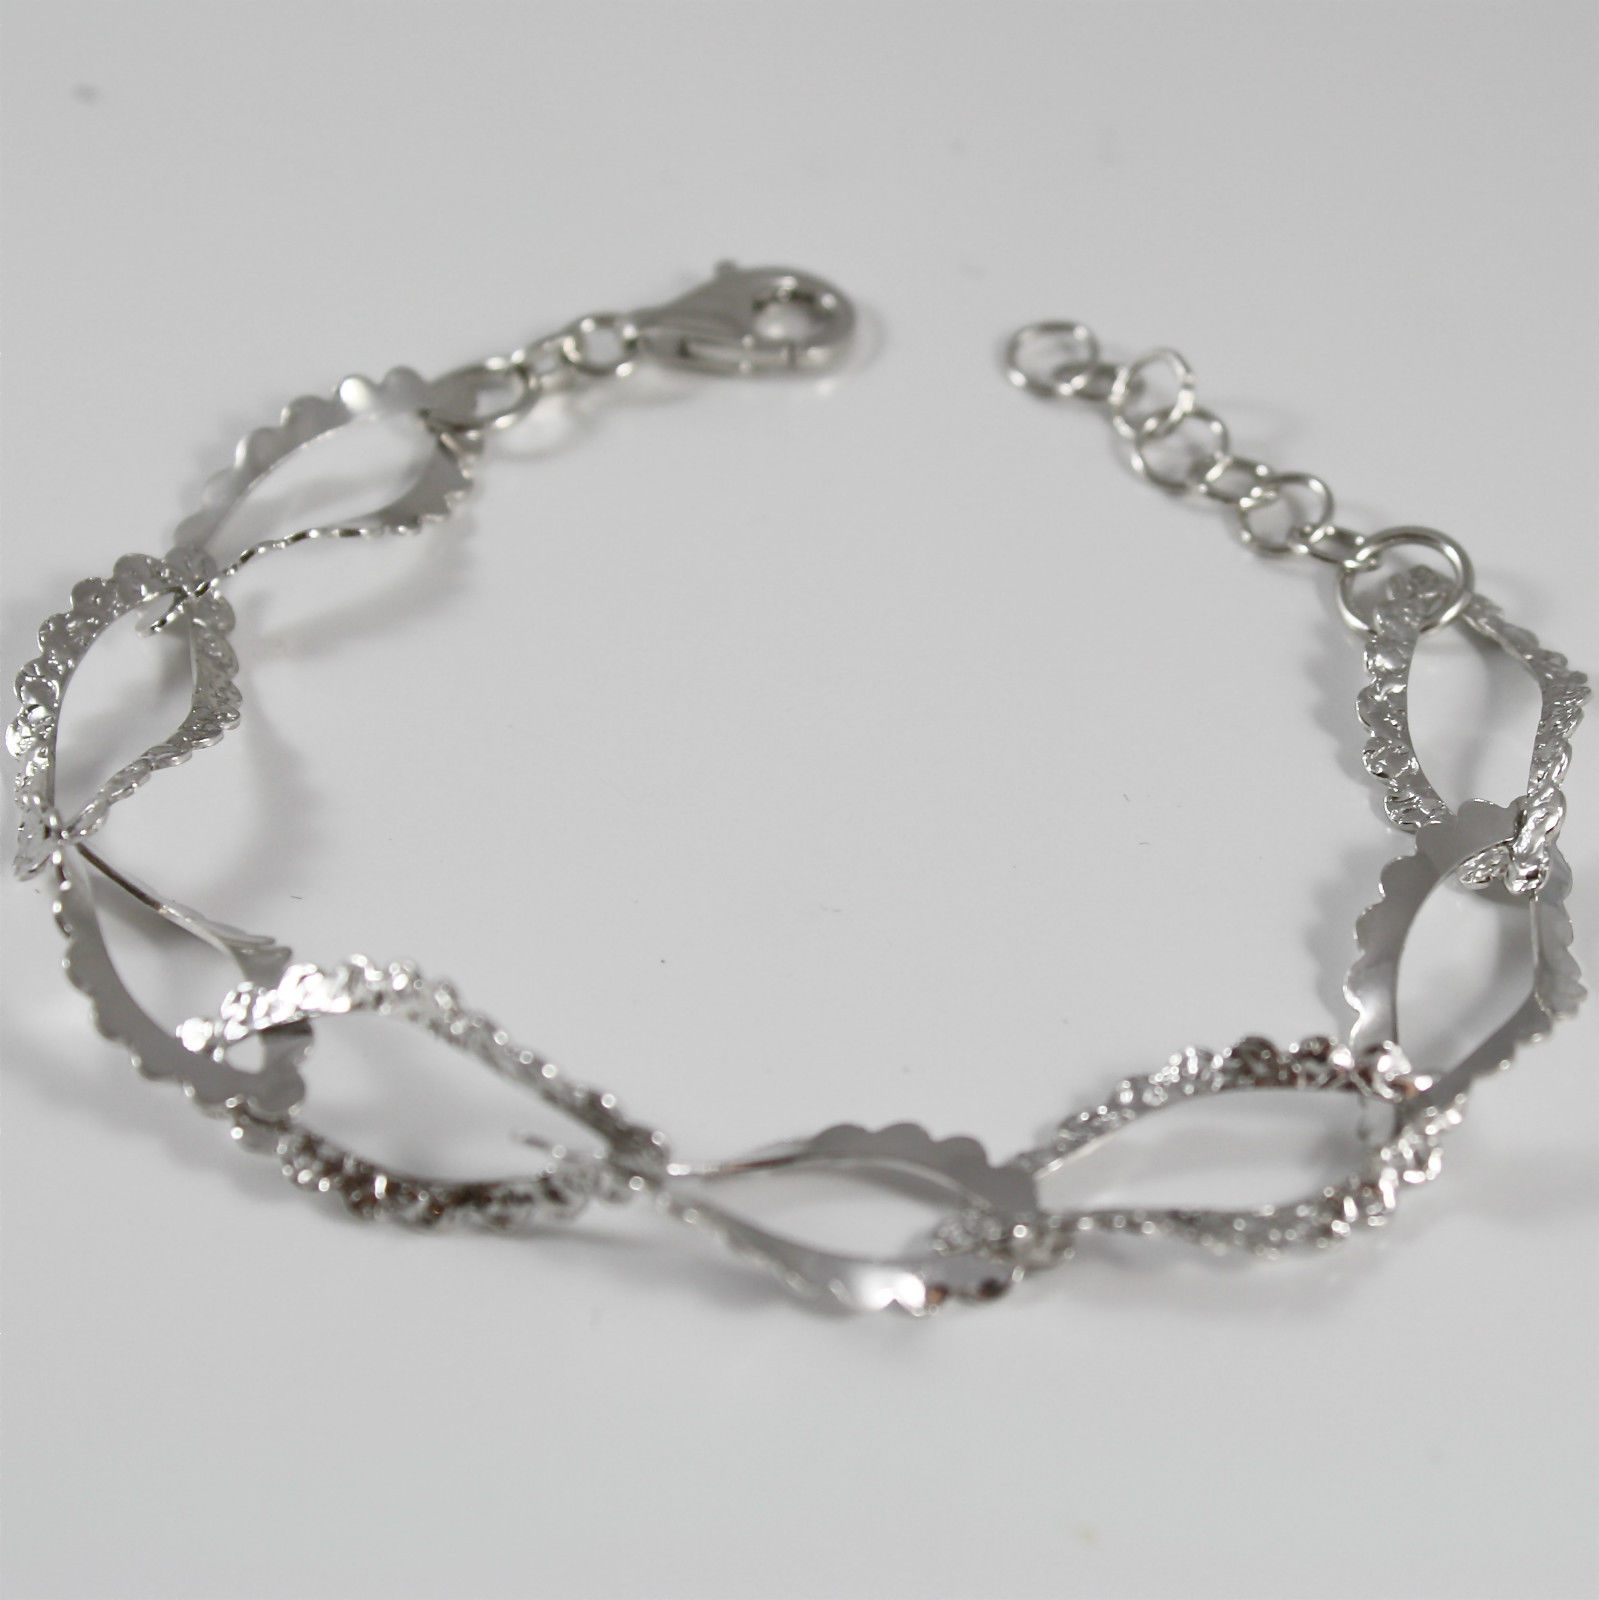 Bracelet in Sterling Silver 925 Rhodium with WORKED OVAL MESH